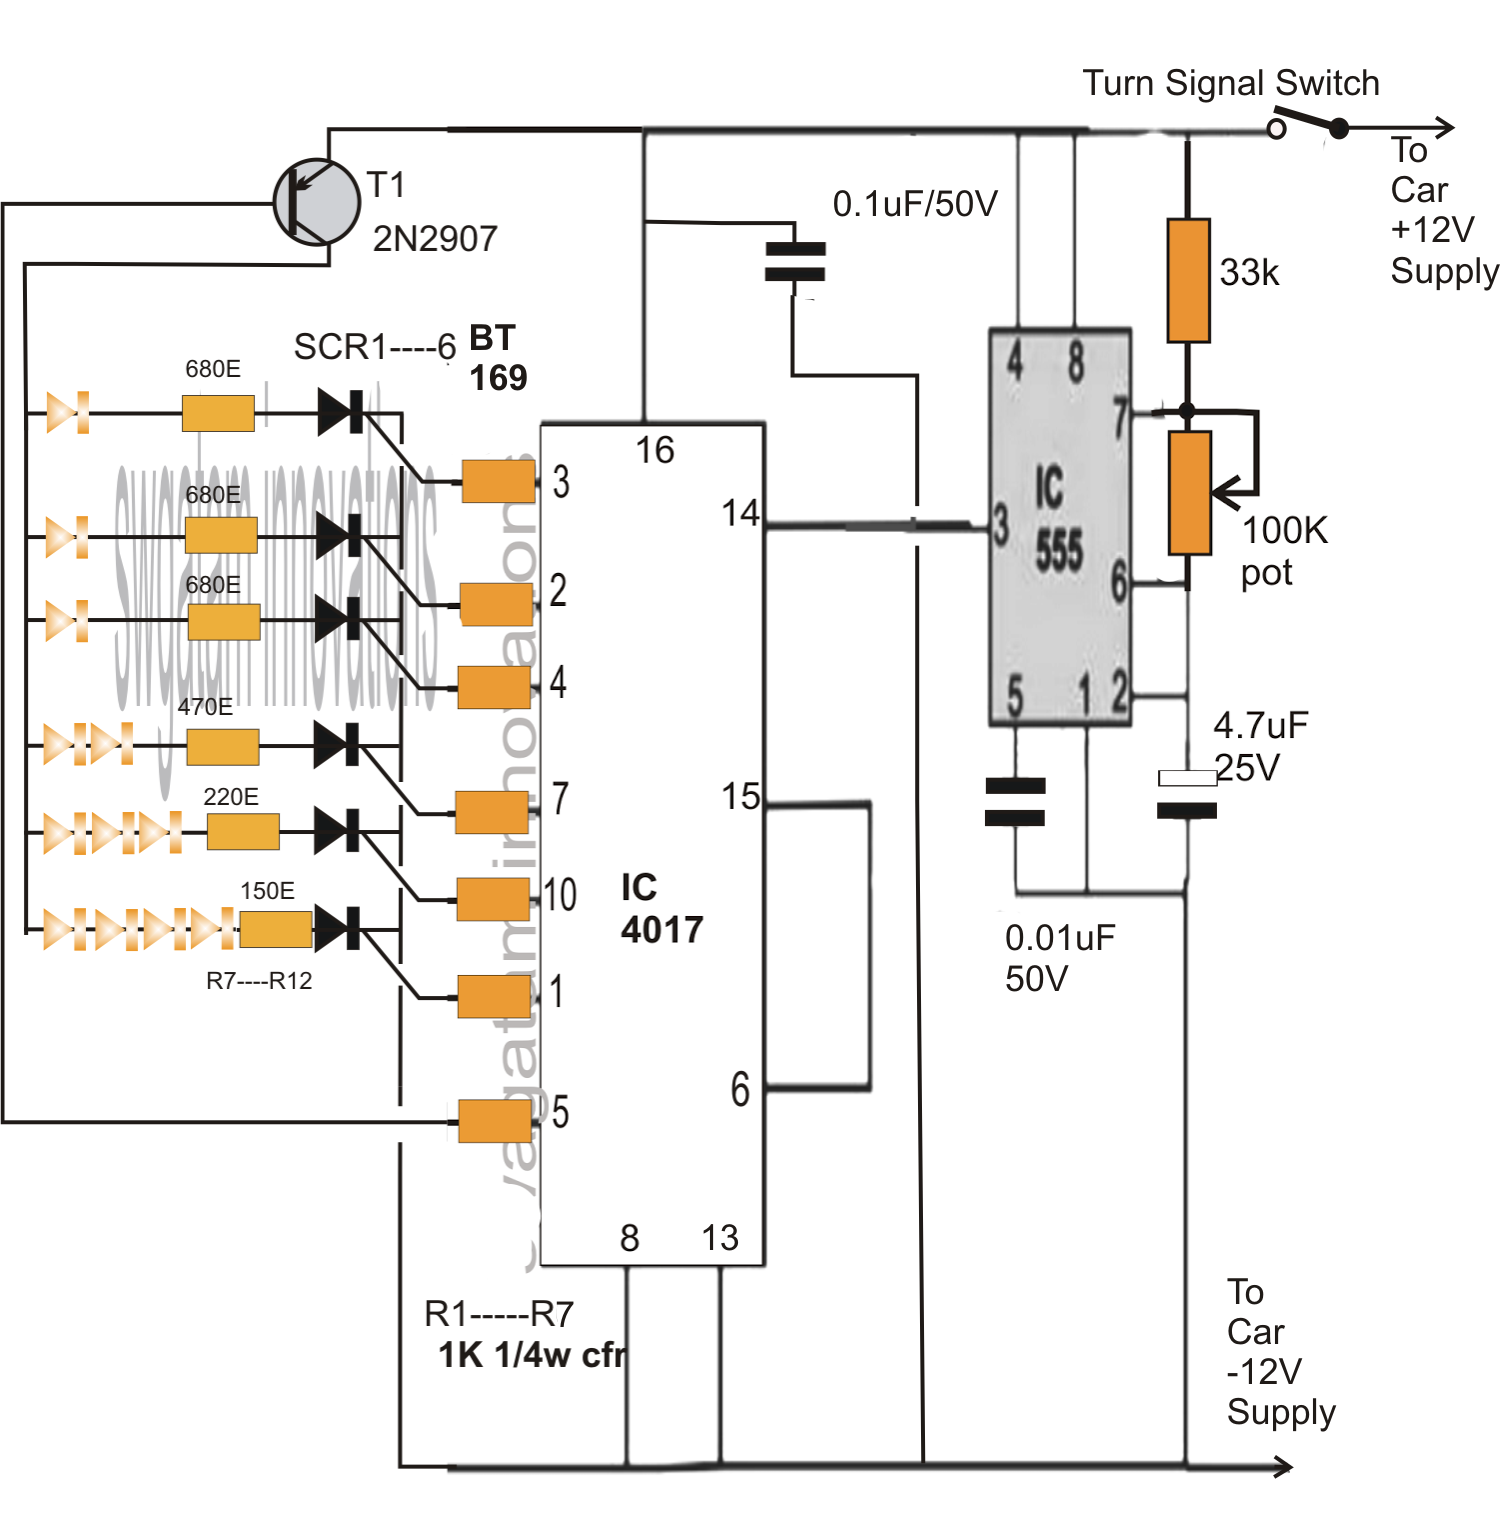 a light switch wiring with Sequential Bar Graph Turn Light on Automatic Room Lights Using Pir Sensor And Relay in addition Mustang Wiring And Vacuum Diagrams furthermore 1968 Mustang Wiring Diagram Vacuum Schematics additionally 231 furthermore How Do I Identify Six Light Switch Wires With A Multimeter.